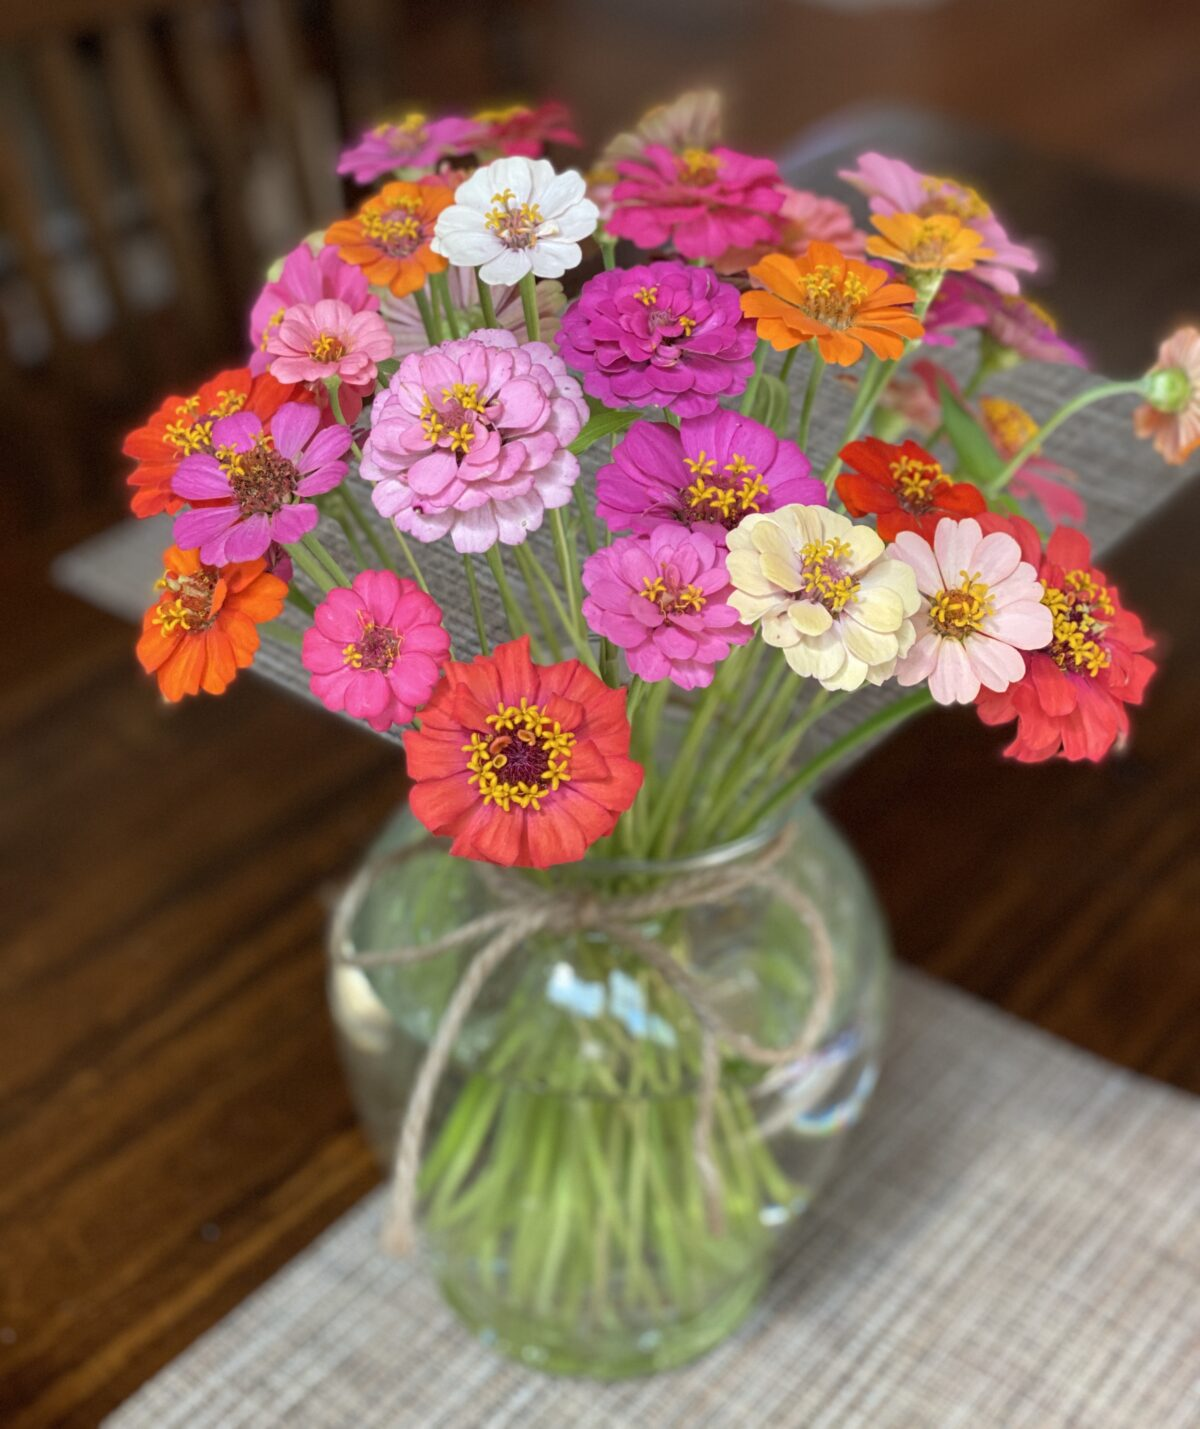 How to Arrange Zinnias (or any fresh cut flowers) in a Vase and Other Ideas